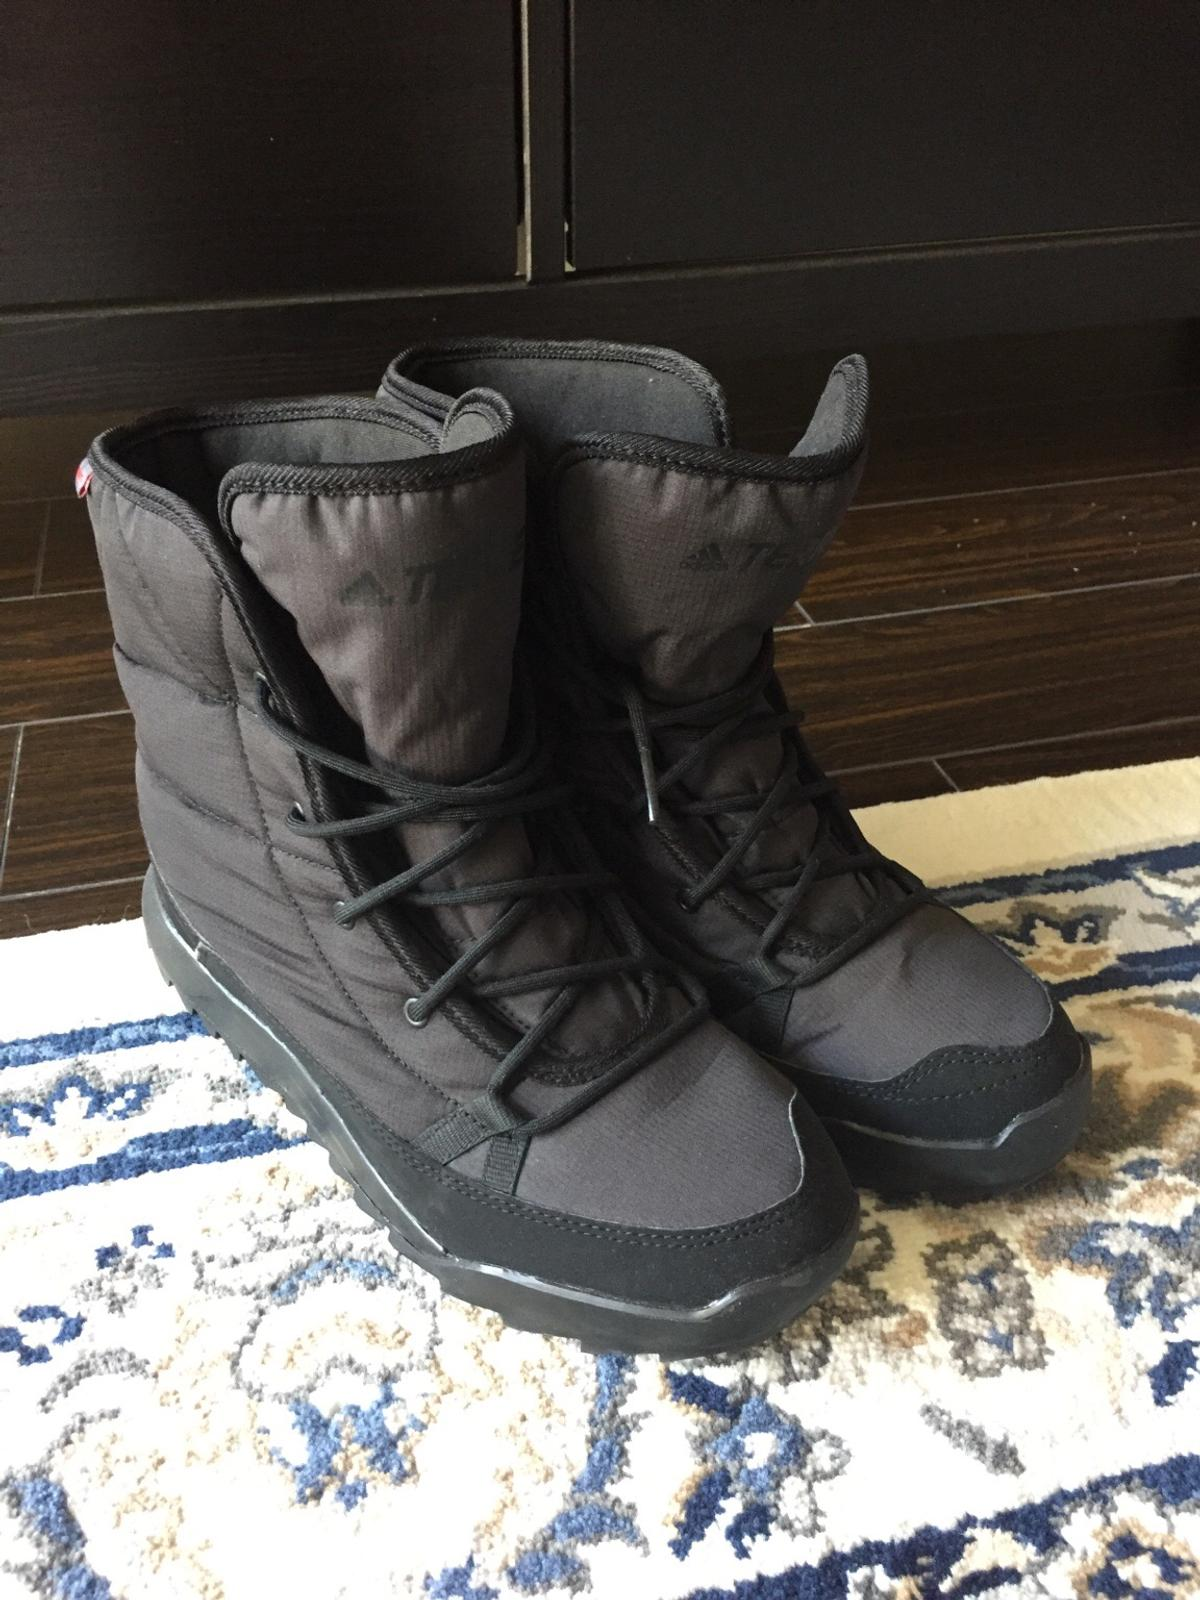 Adidas Terrex Choleah Winter Boots (black)